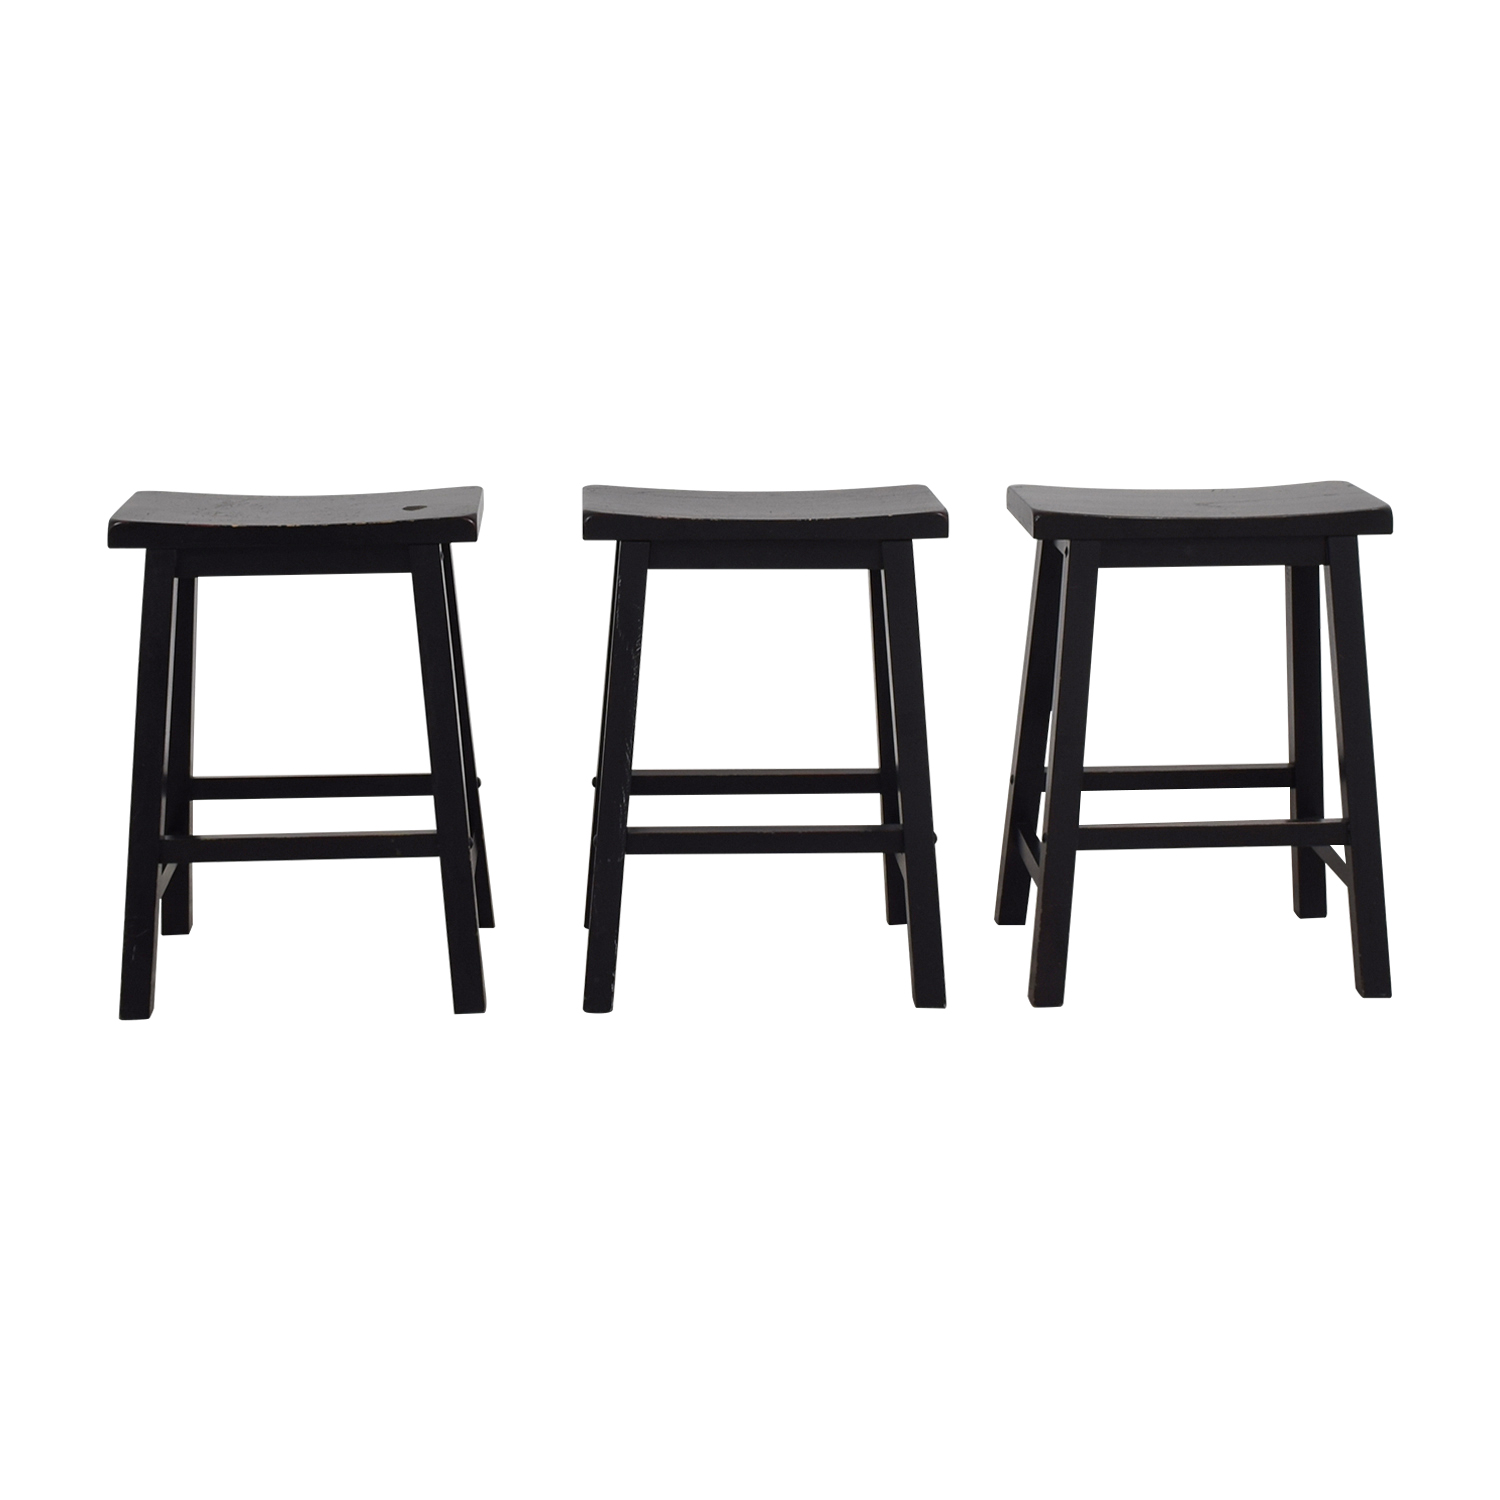 West Elm West Elm Black Solid Wood Stools coupon